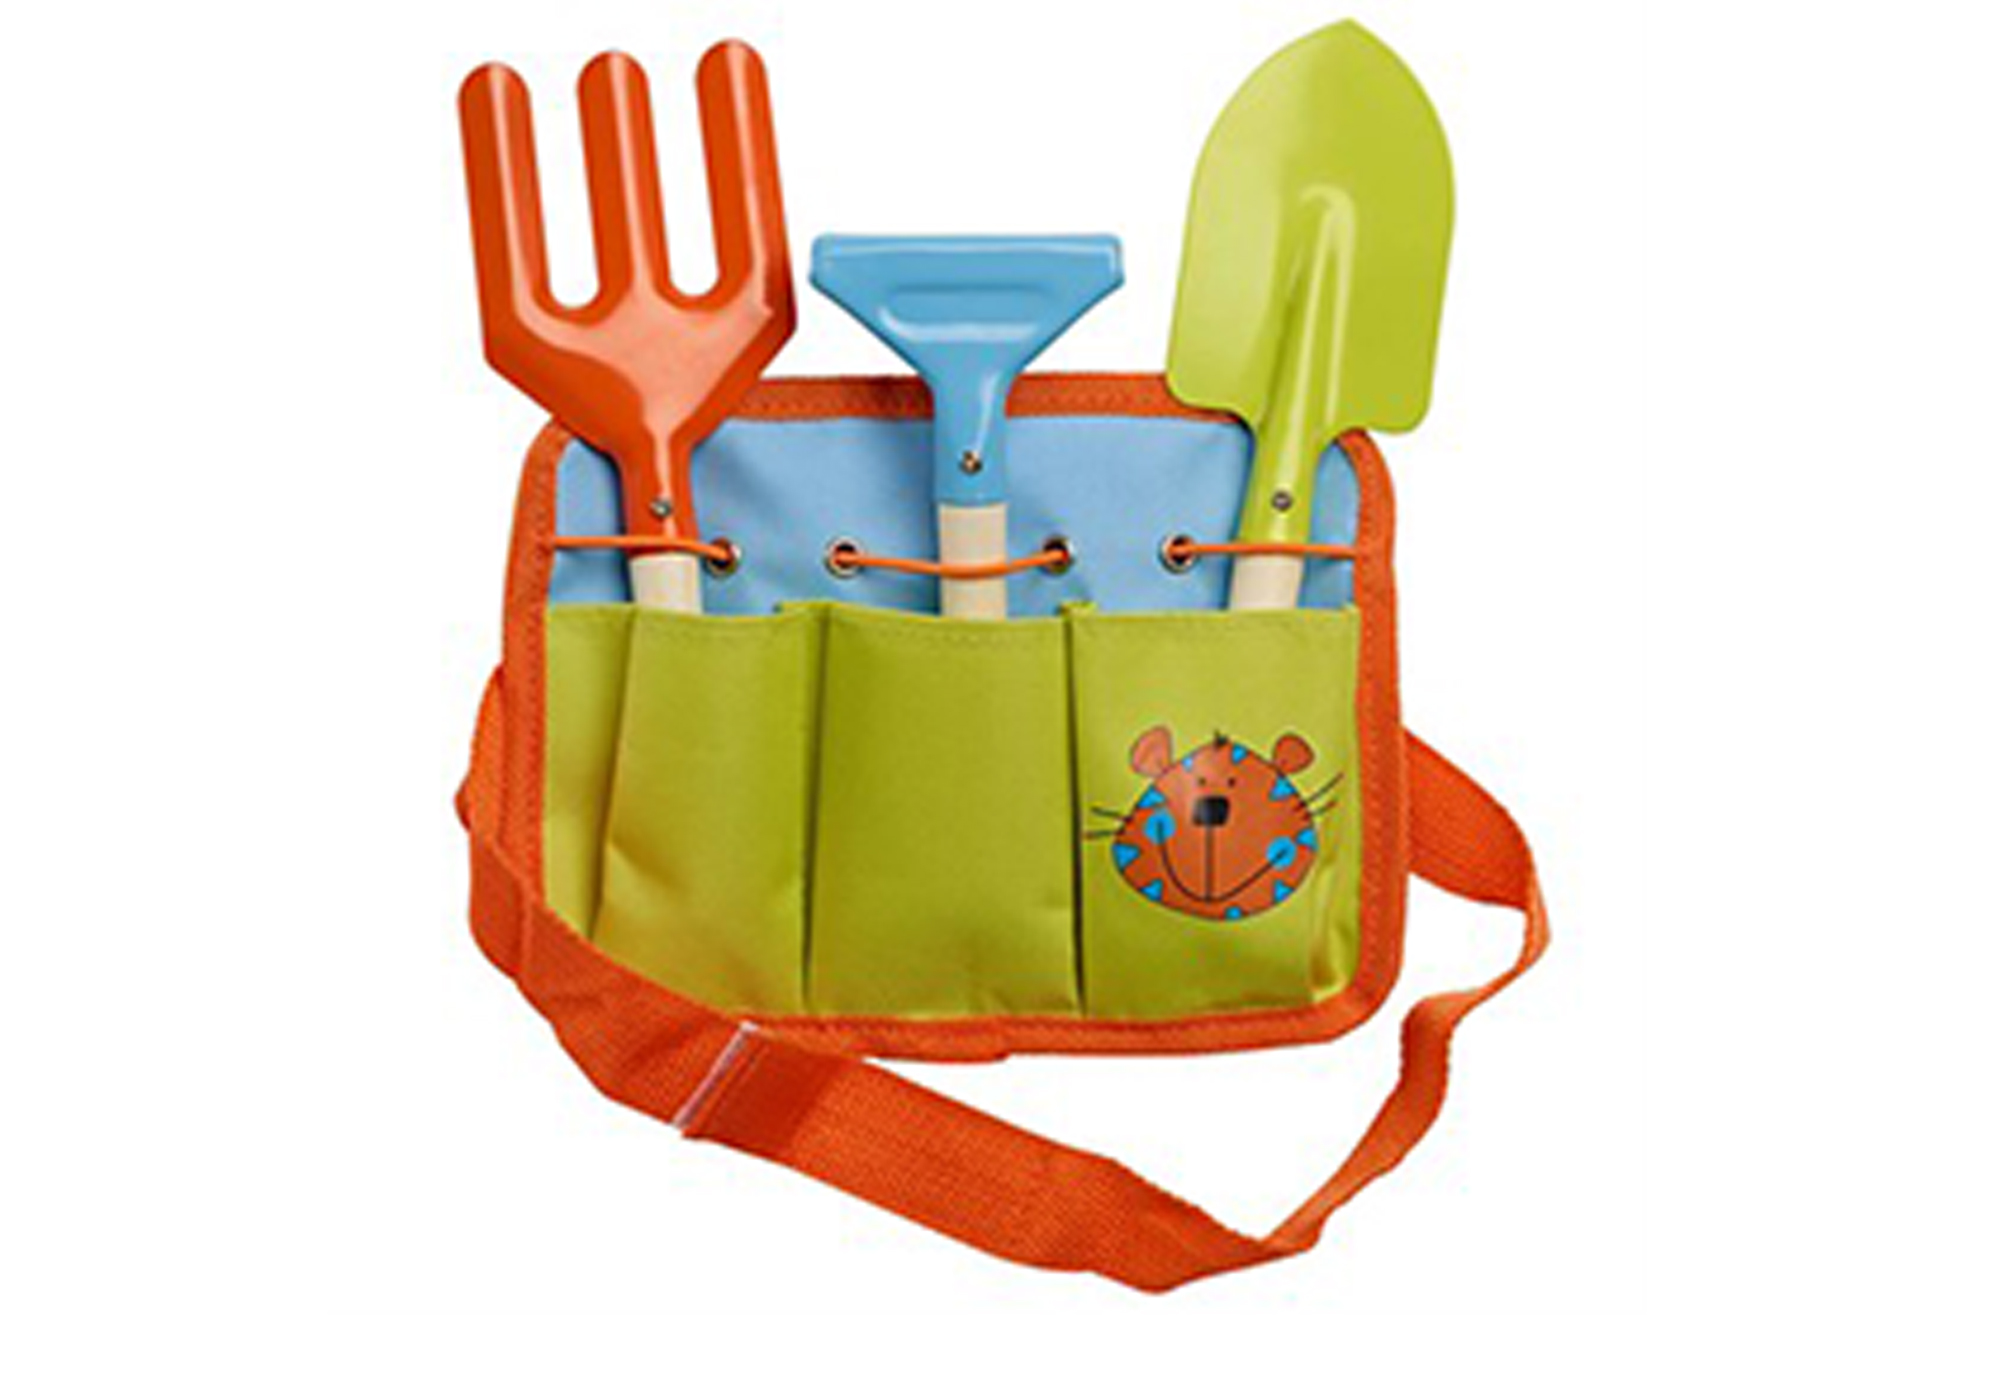 Kids Tool Belt with Tools